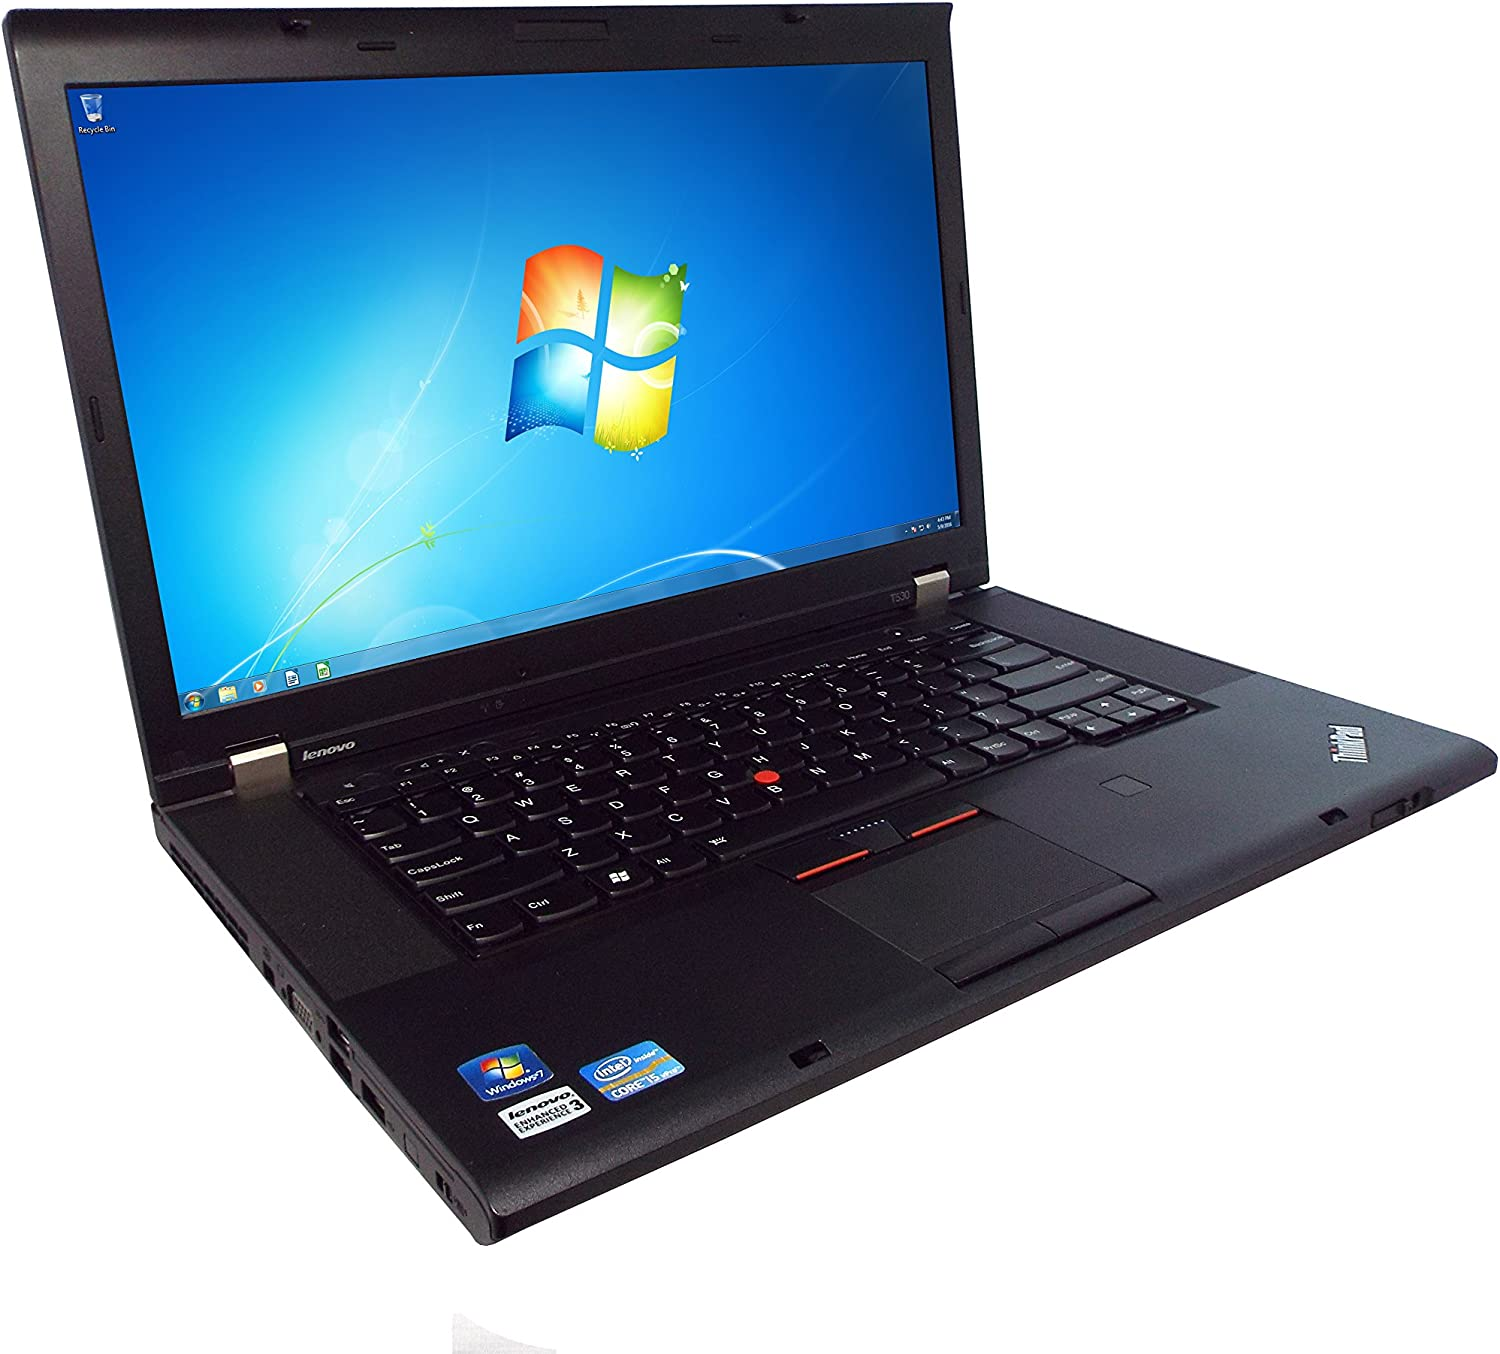 Lenovo ThinkPad T530 15.6